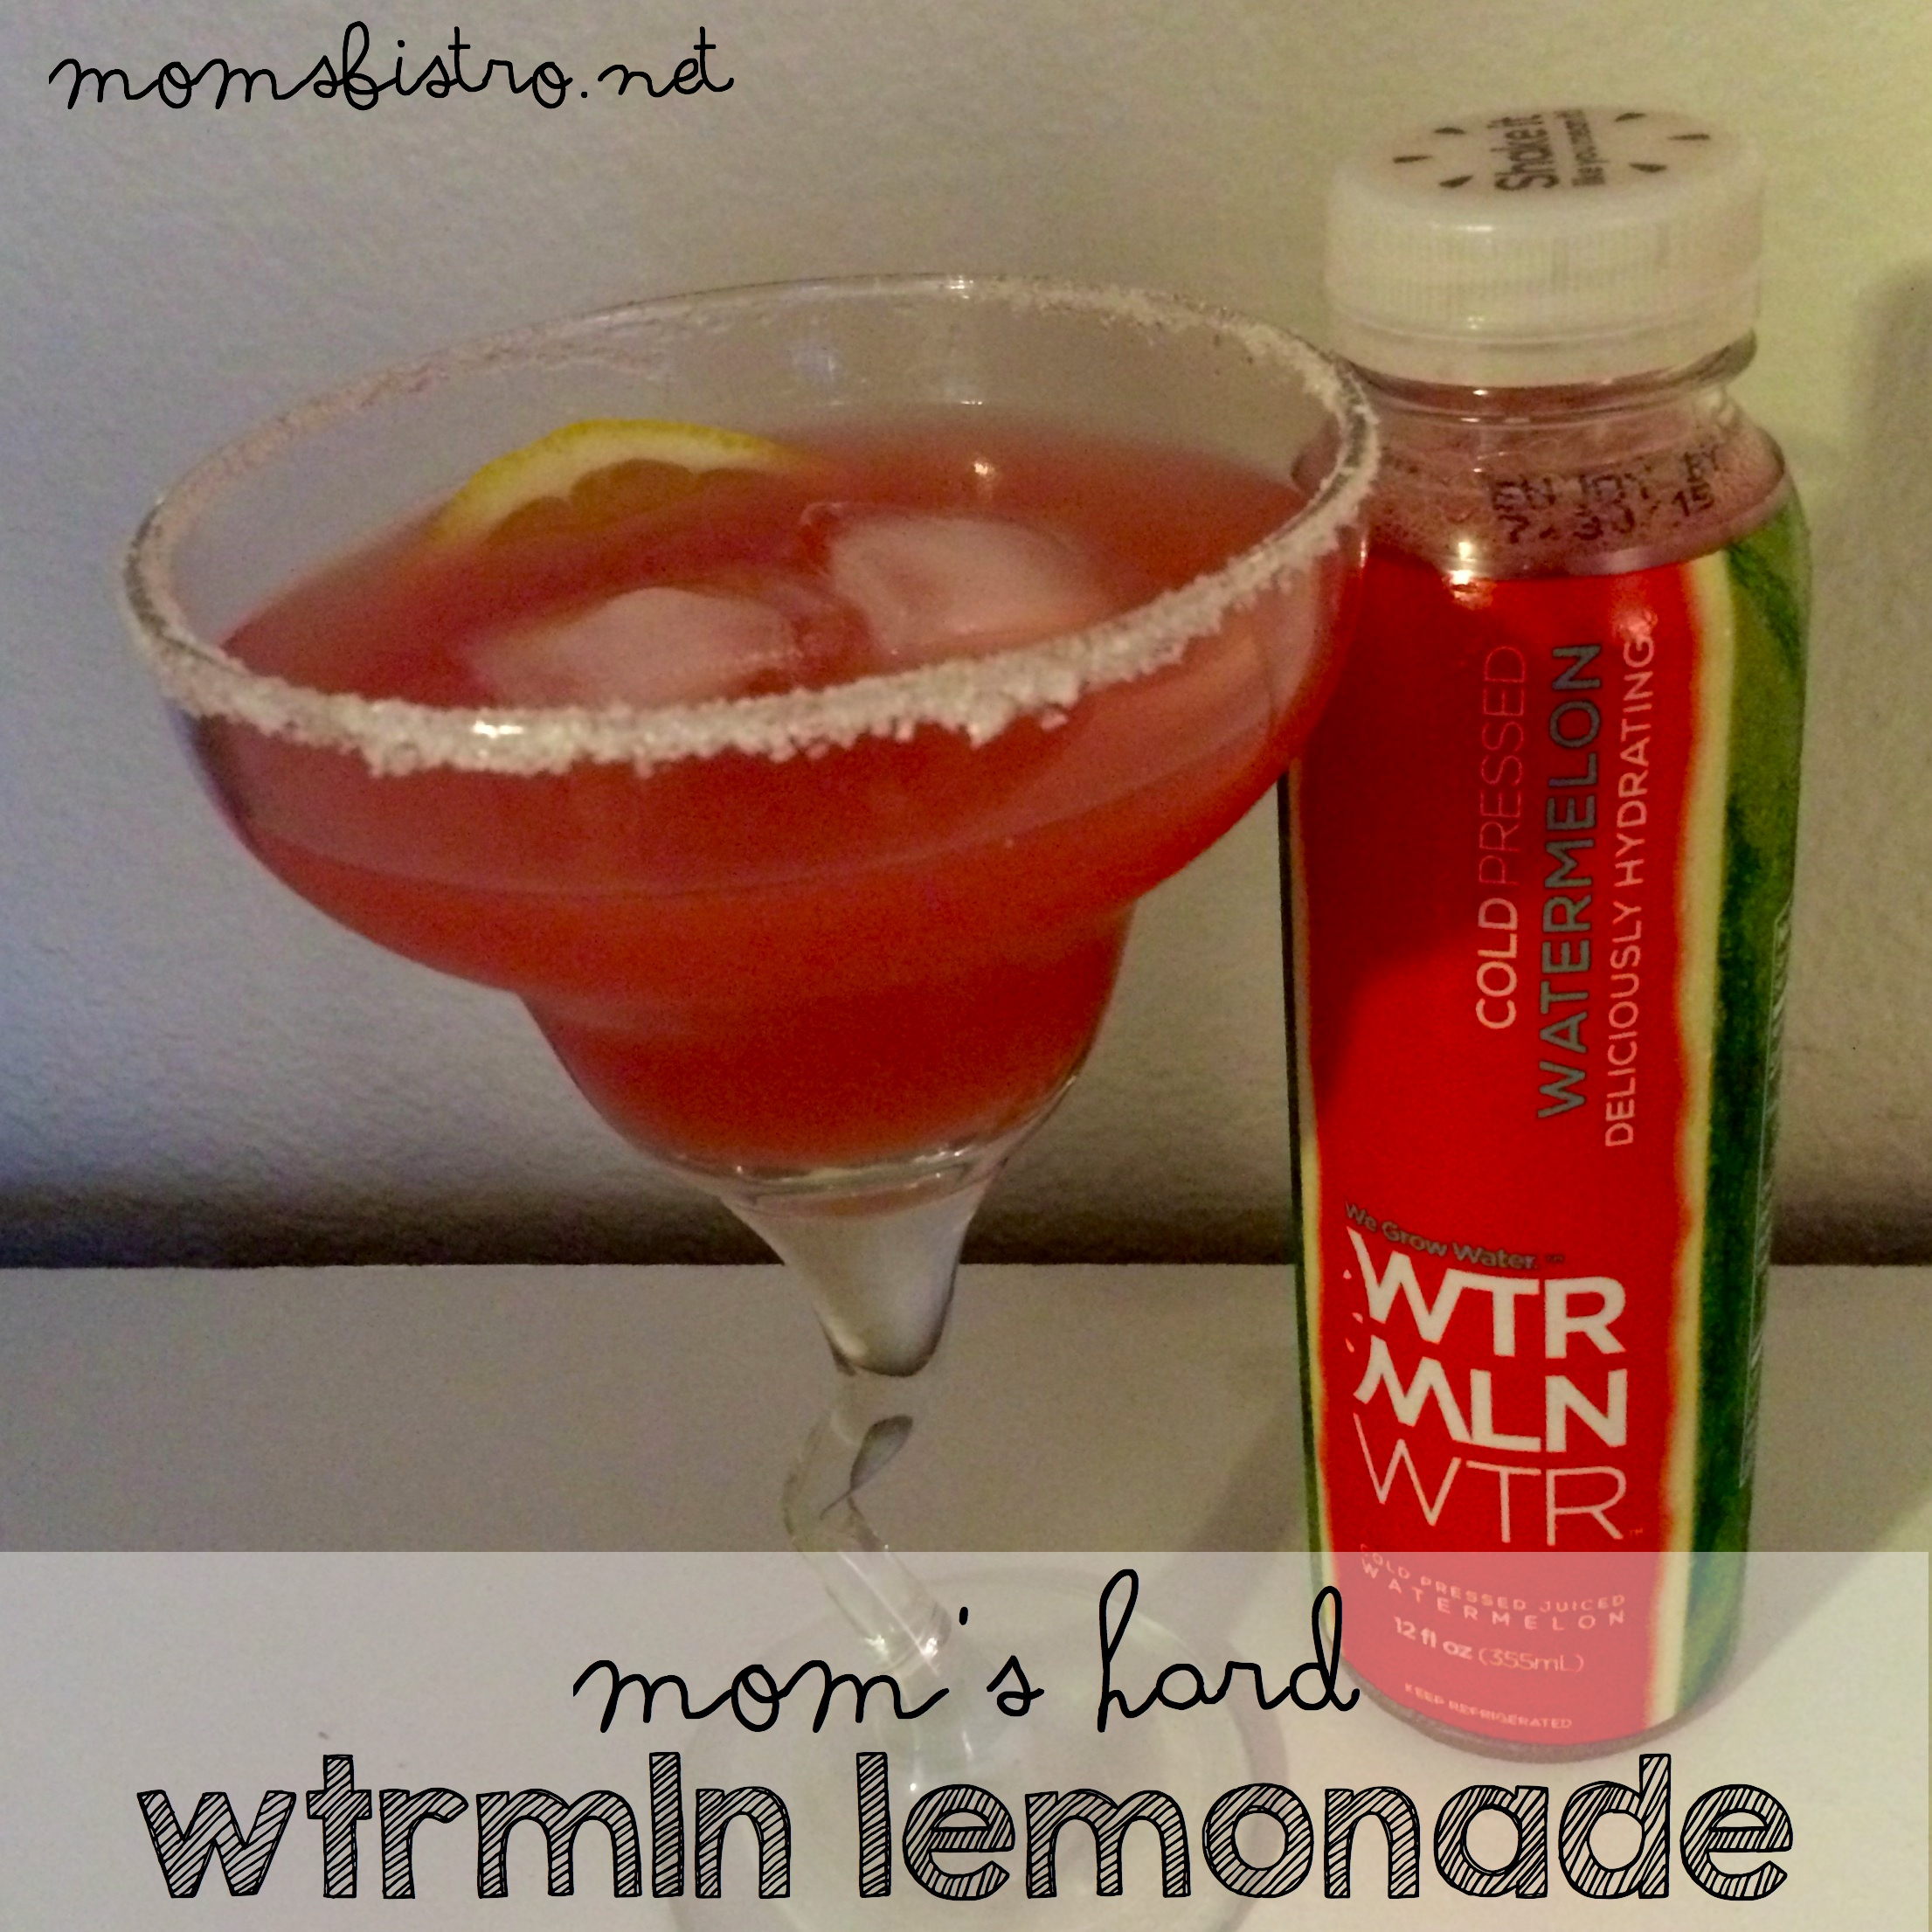 WTRMLN WTR review hard watermelon lemonade recipe adult lemonade momsbistro